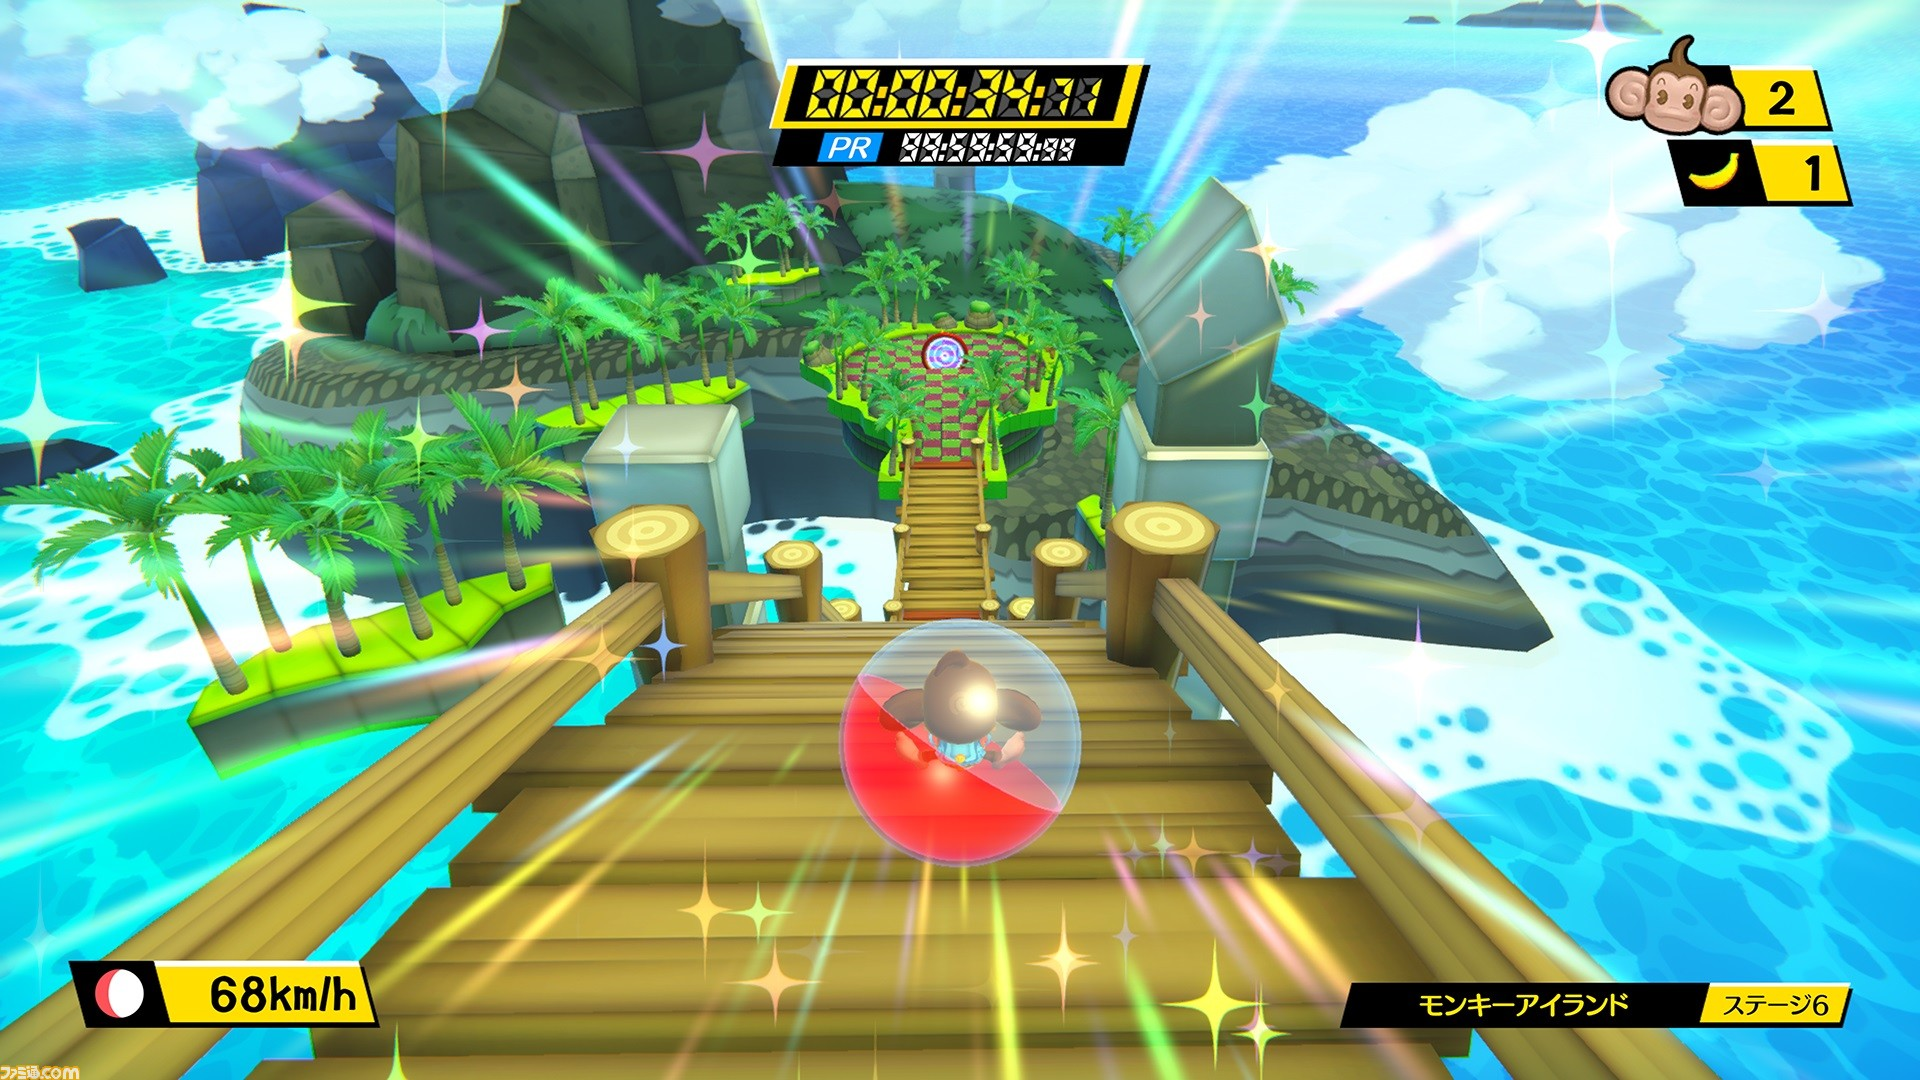 Super Monkey Ball Remastered